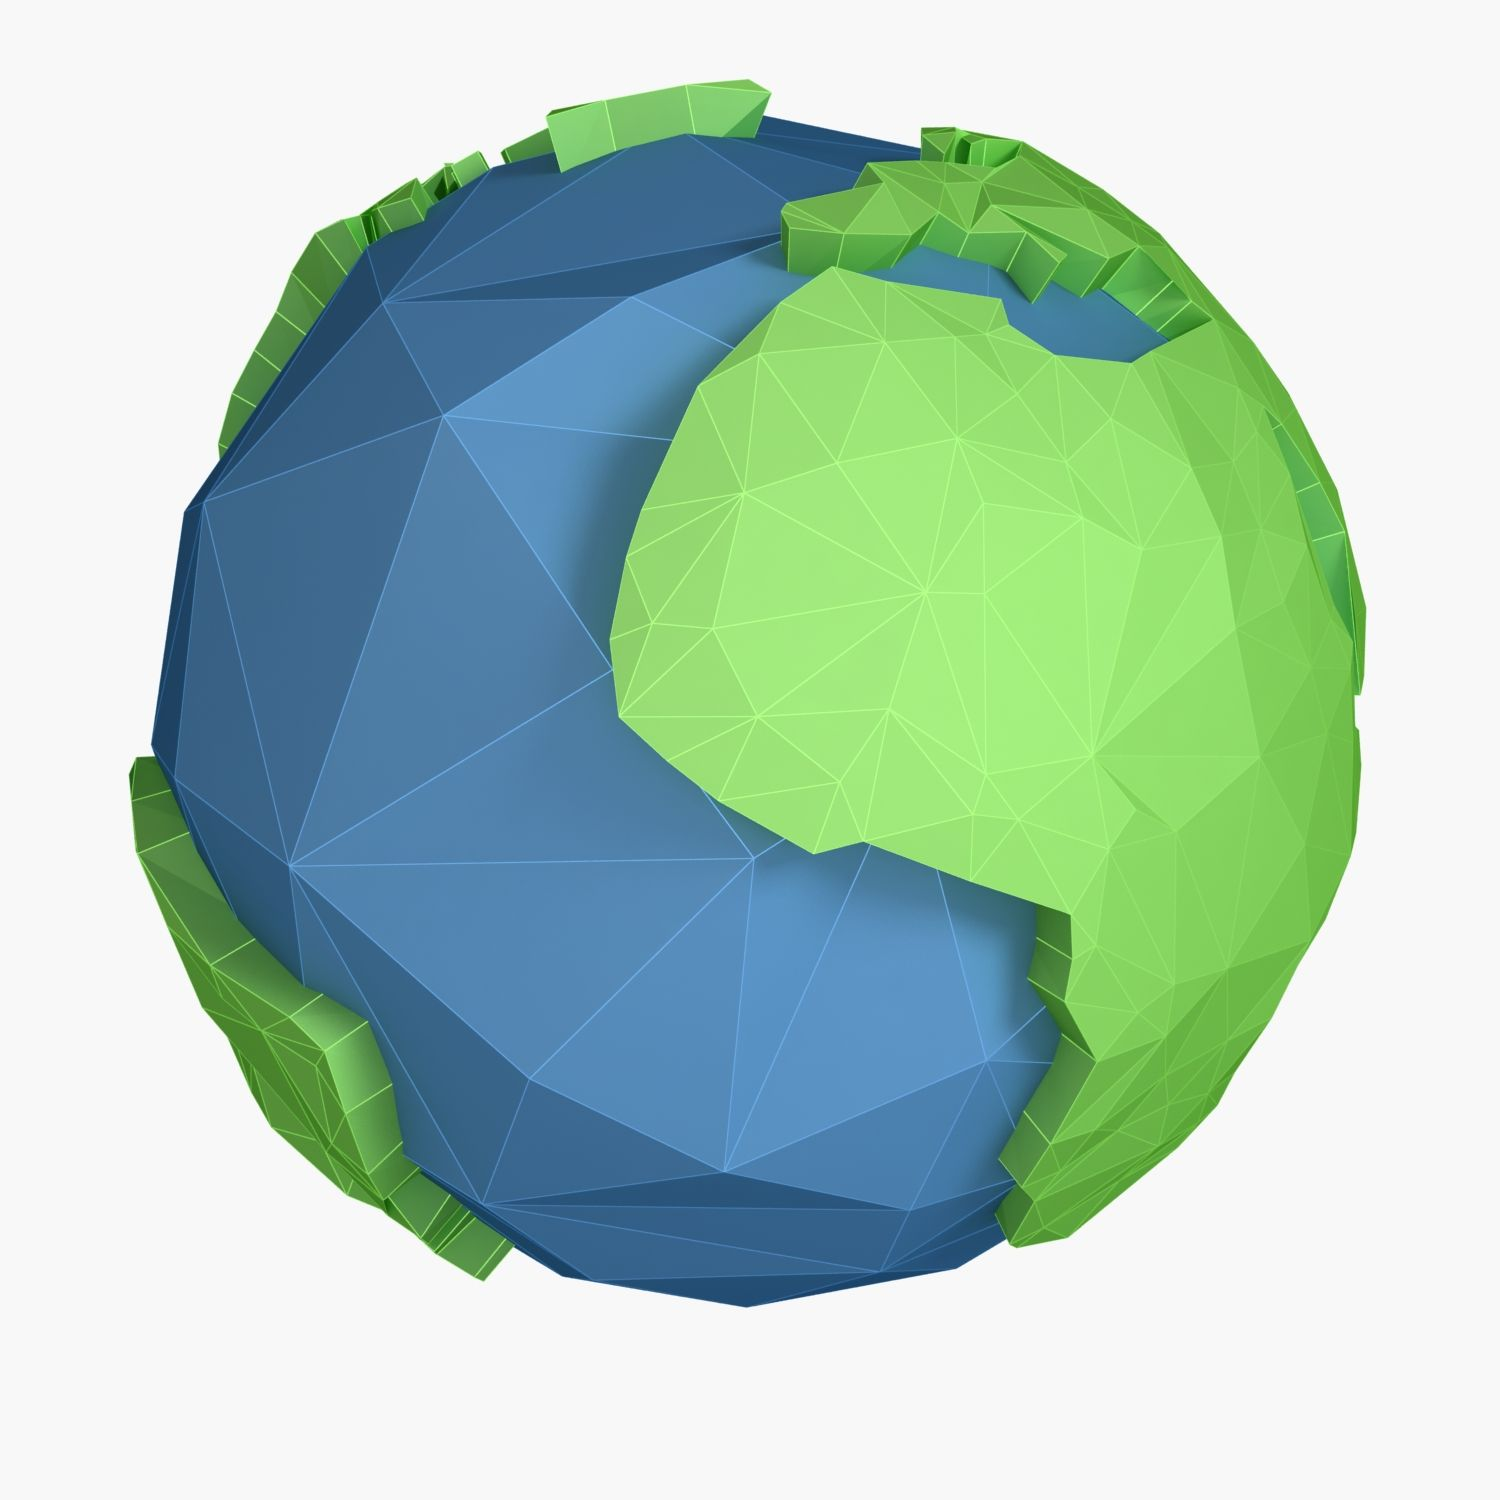 3d model earth cartoon world map globe sphere cartography 3d model earth cartoon world map globe sphere cartography gumiabroncs Gallery